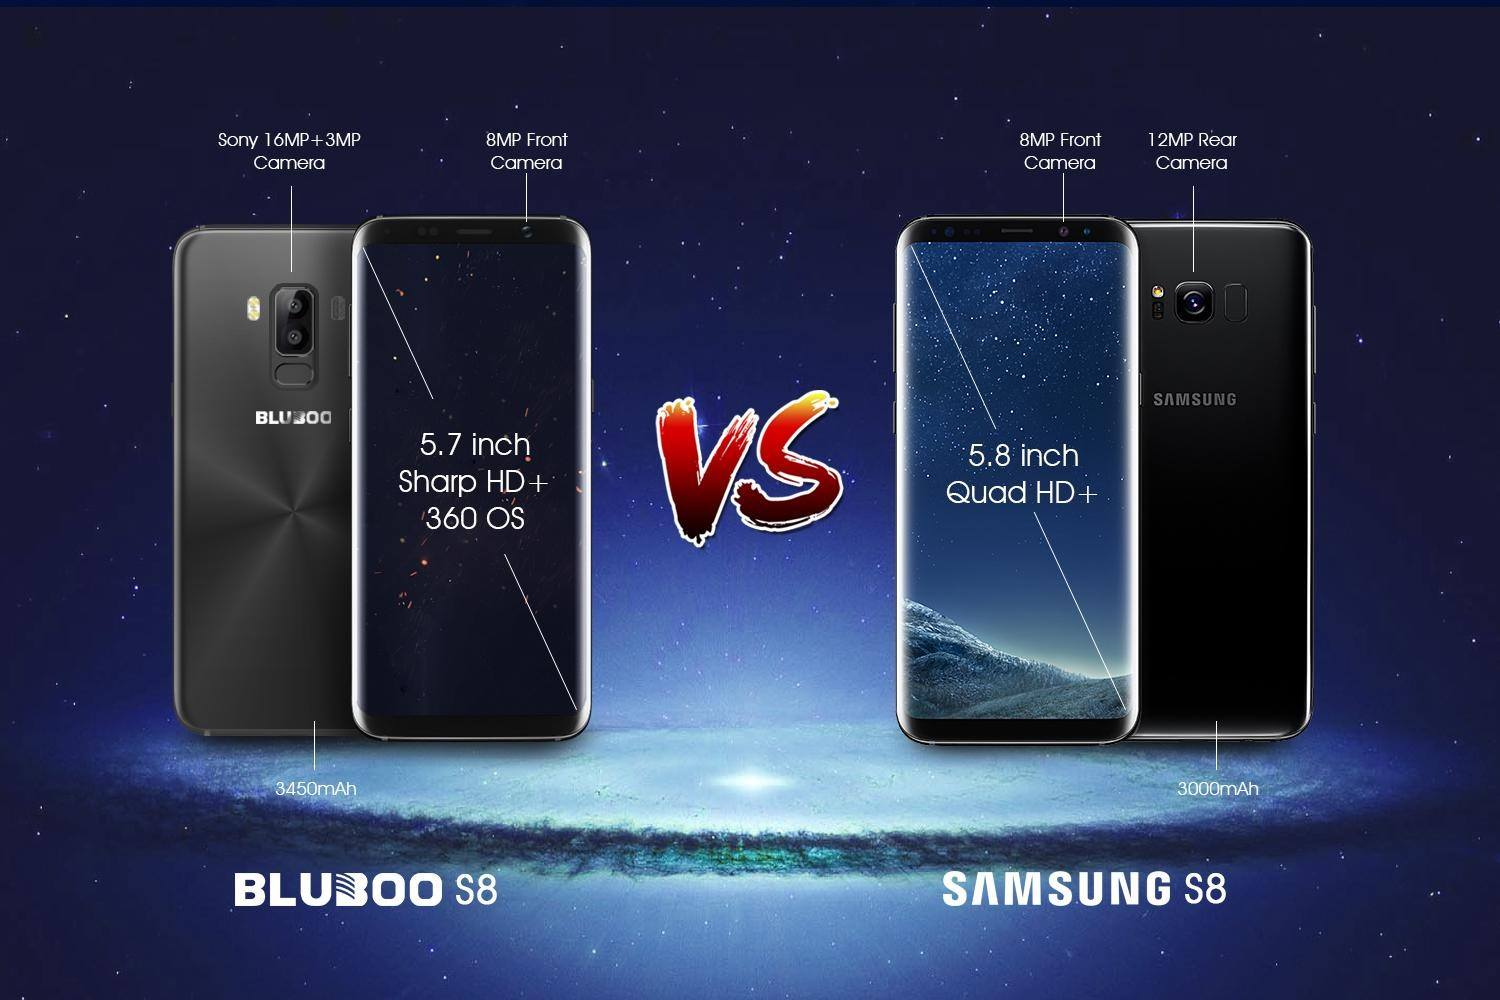 bluboo s8 comparat cu samsung galaxy s8, 80 usd vs 800 usd